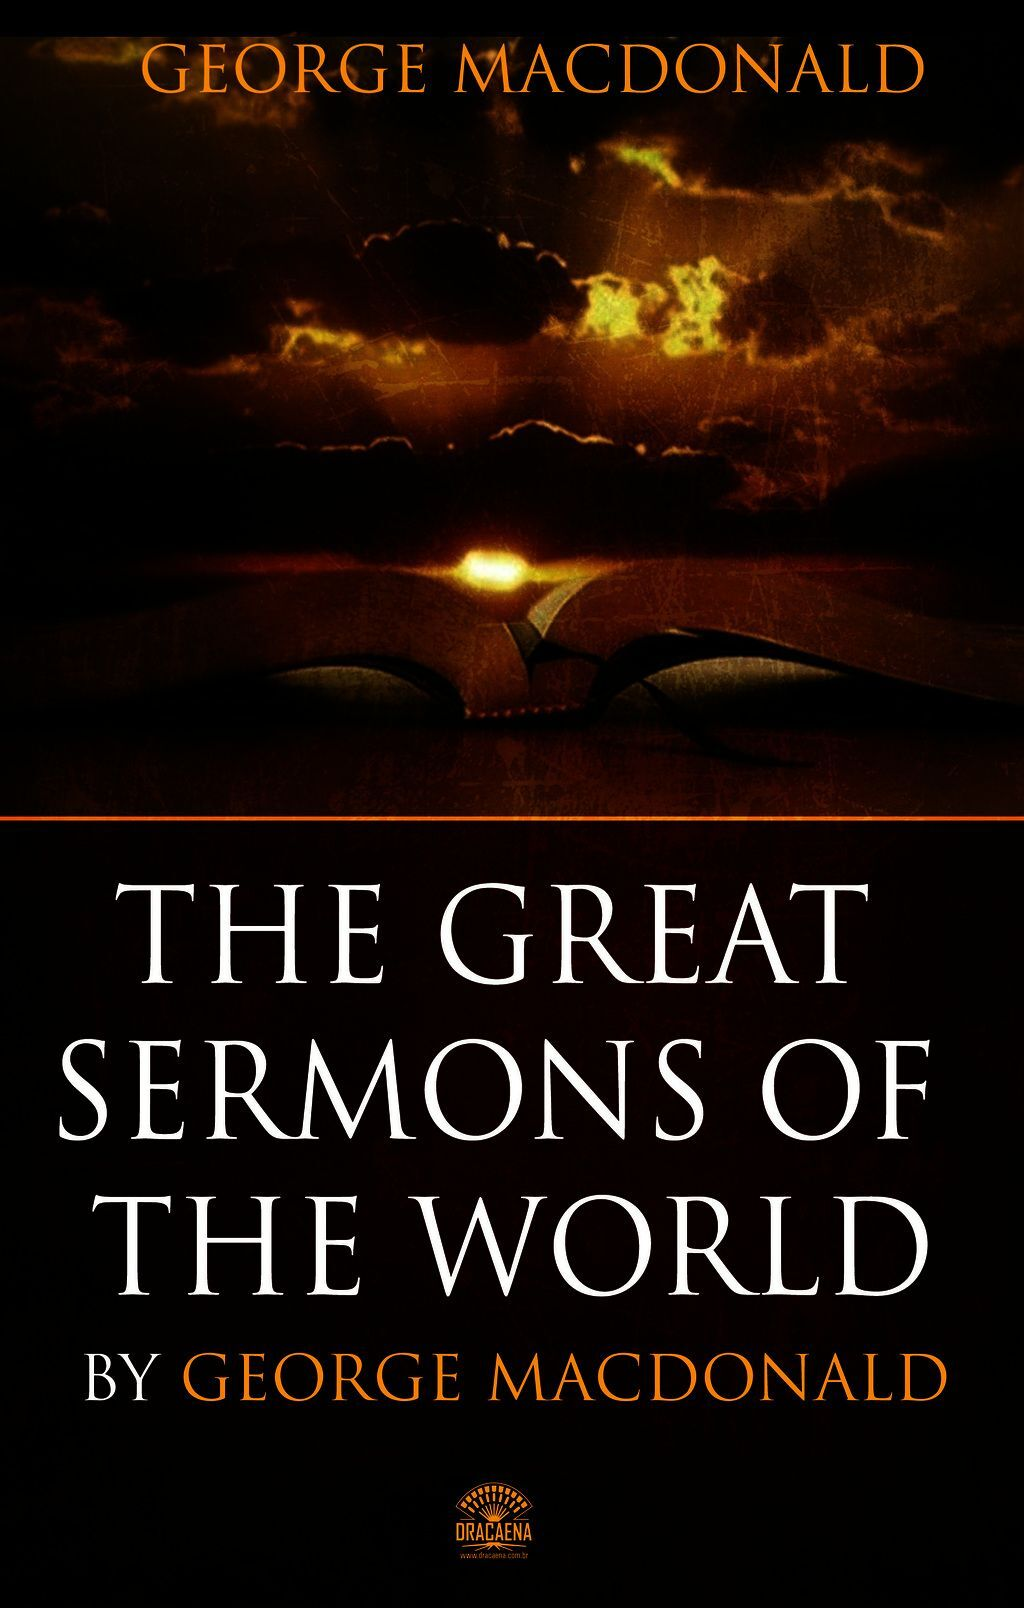 The Great Sermons Of George Macdonald